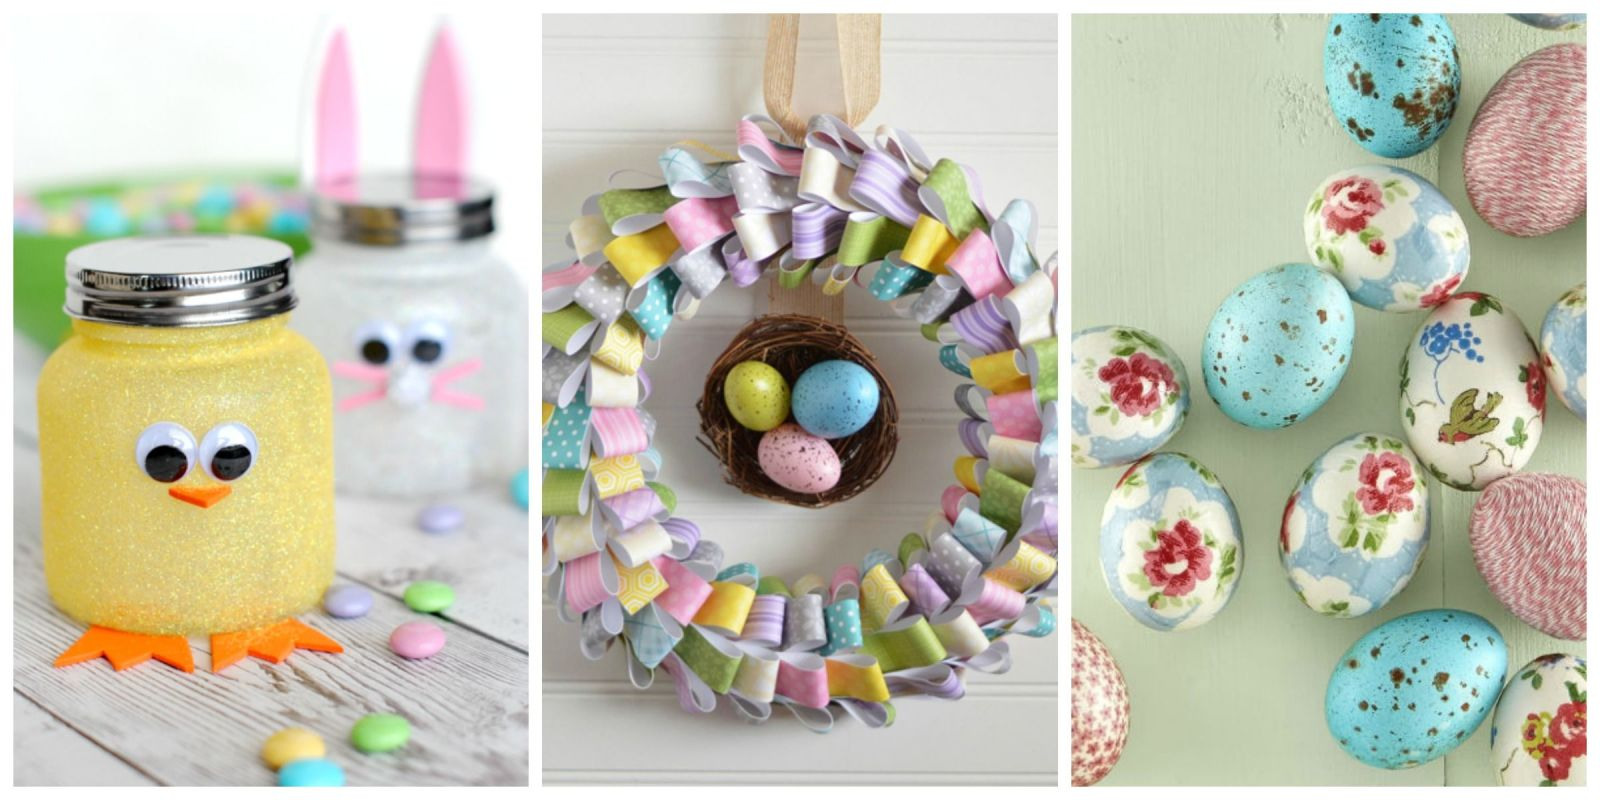 60 Easy Easter Crafts Ideas For Easter Diy Decorations Gifts Country Living